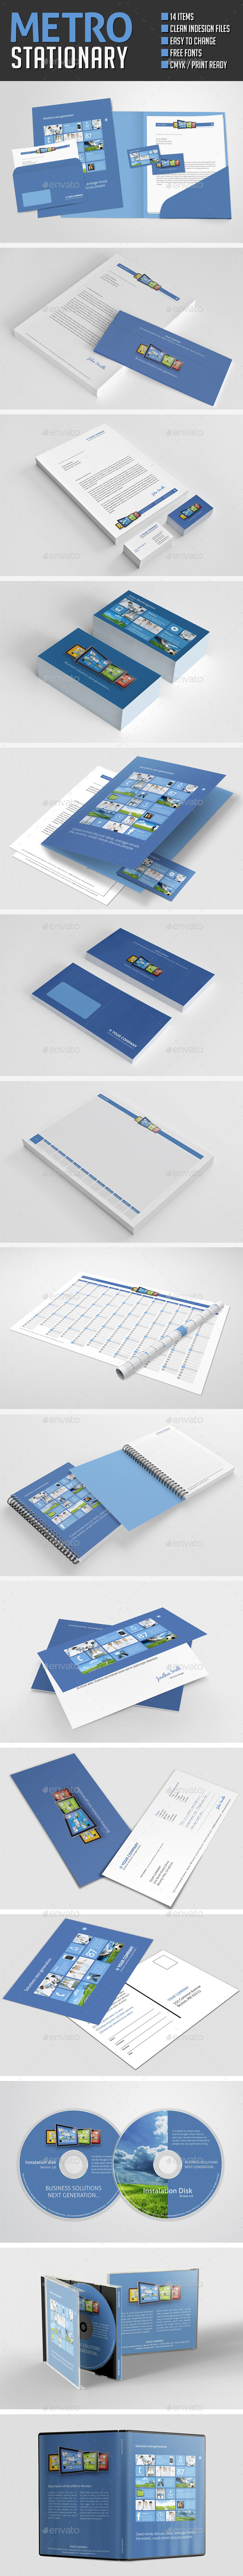 Metro Corporate Identity Stationary Pack - Stationery Print Templates